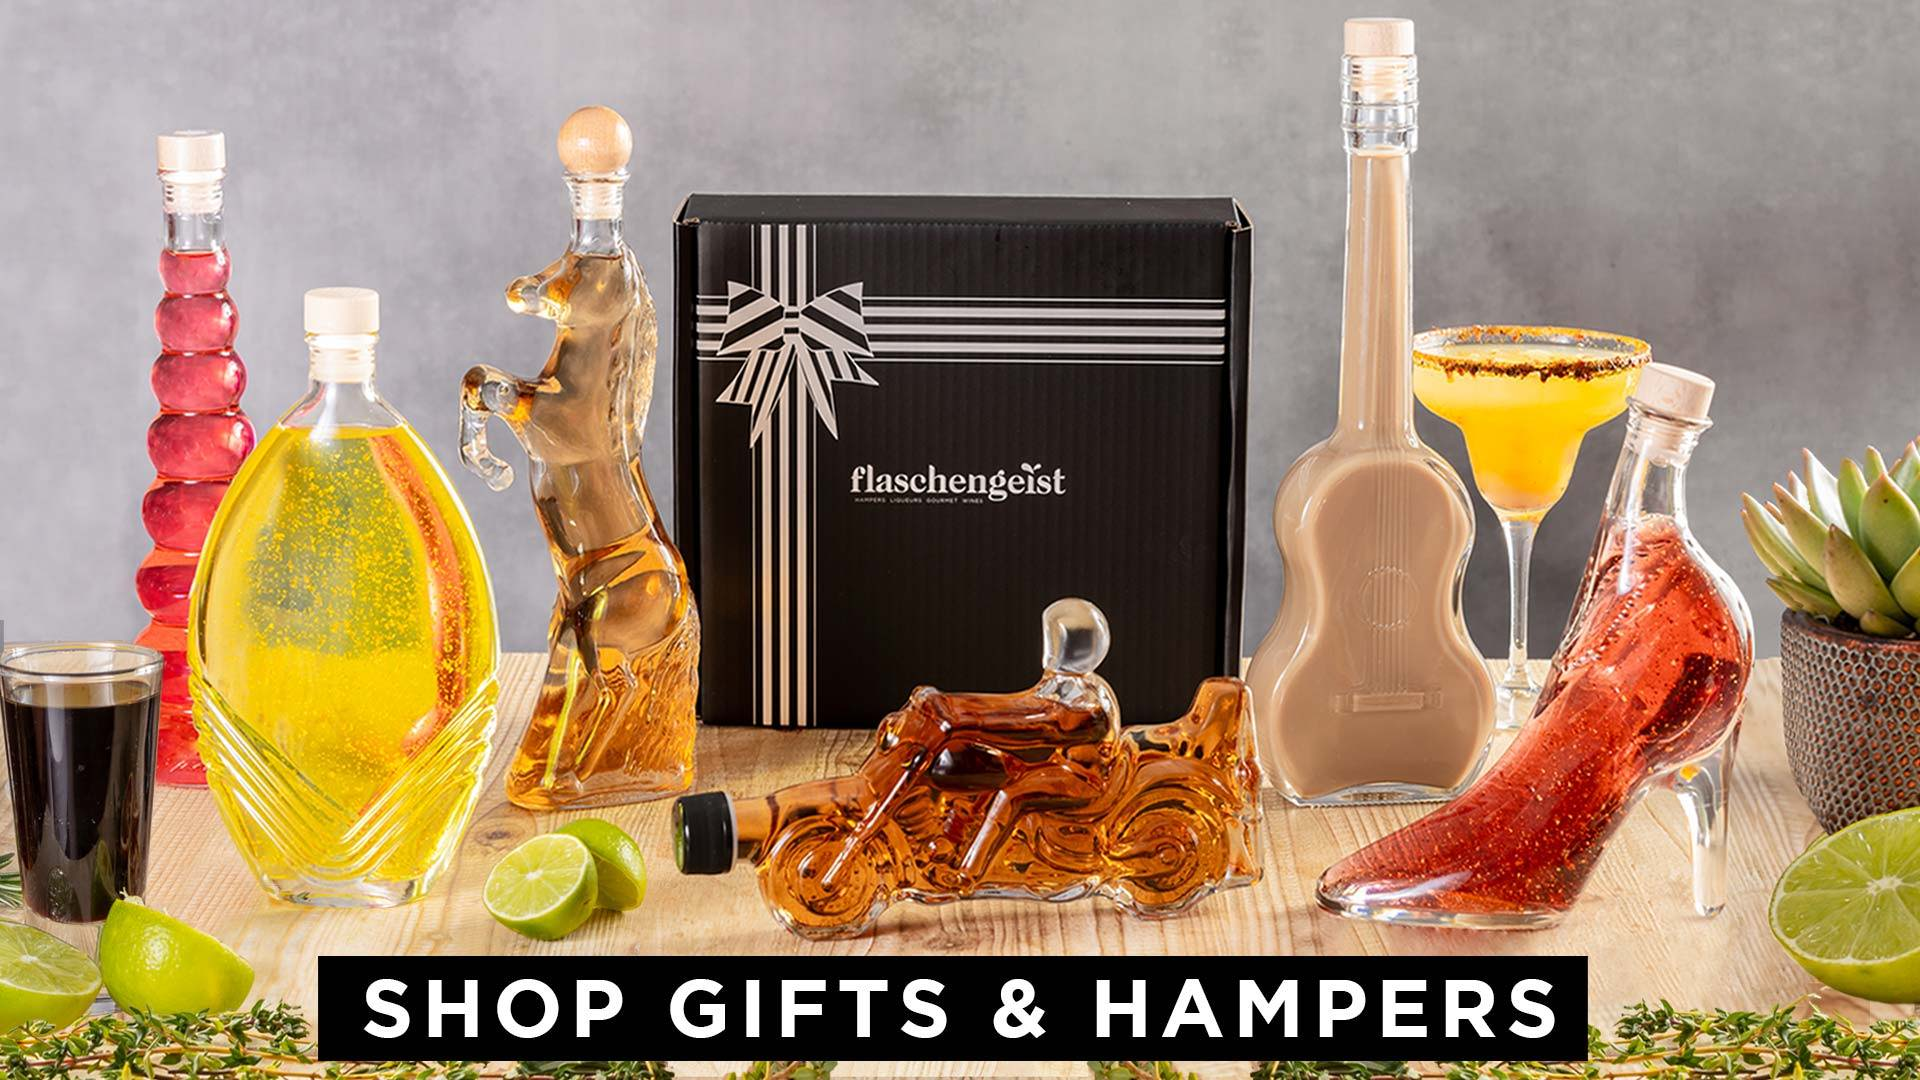 Shop Gifts and Hampers - Flaschengeist